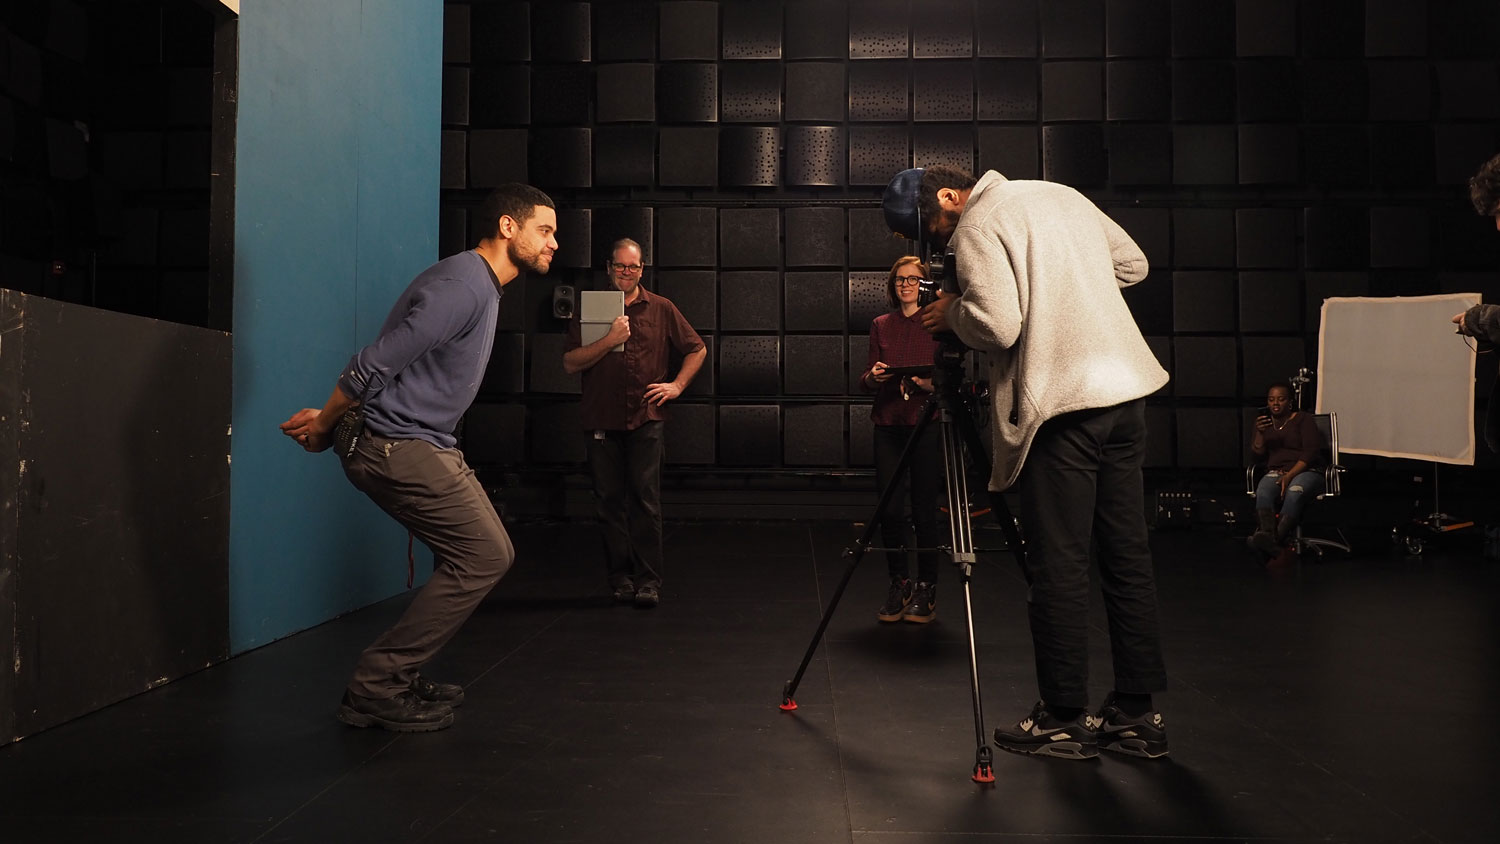 a man behind a camera filming a man against a blue backdrop, with staff in the background